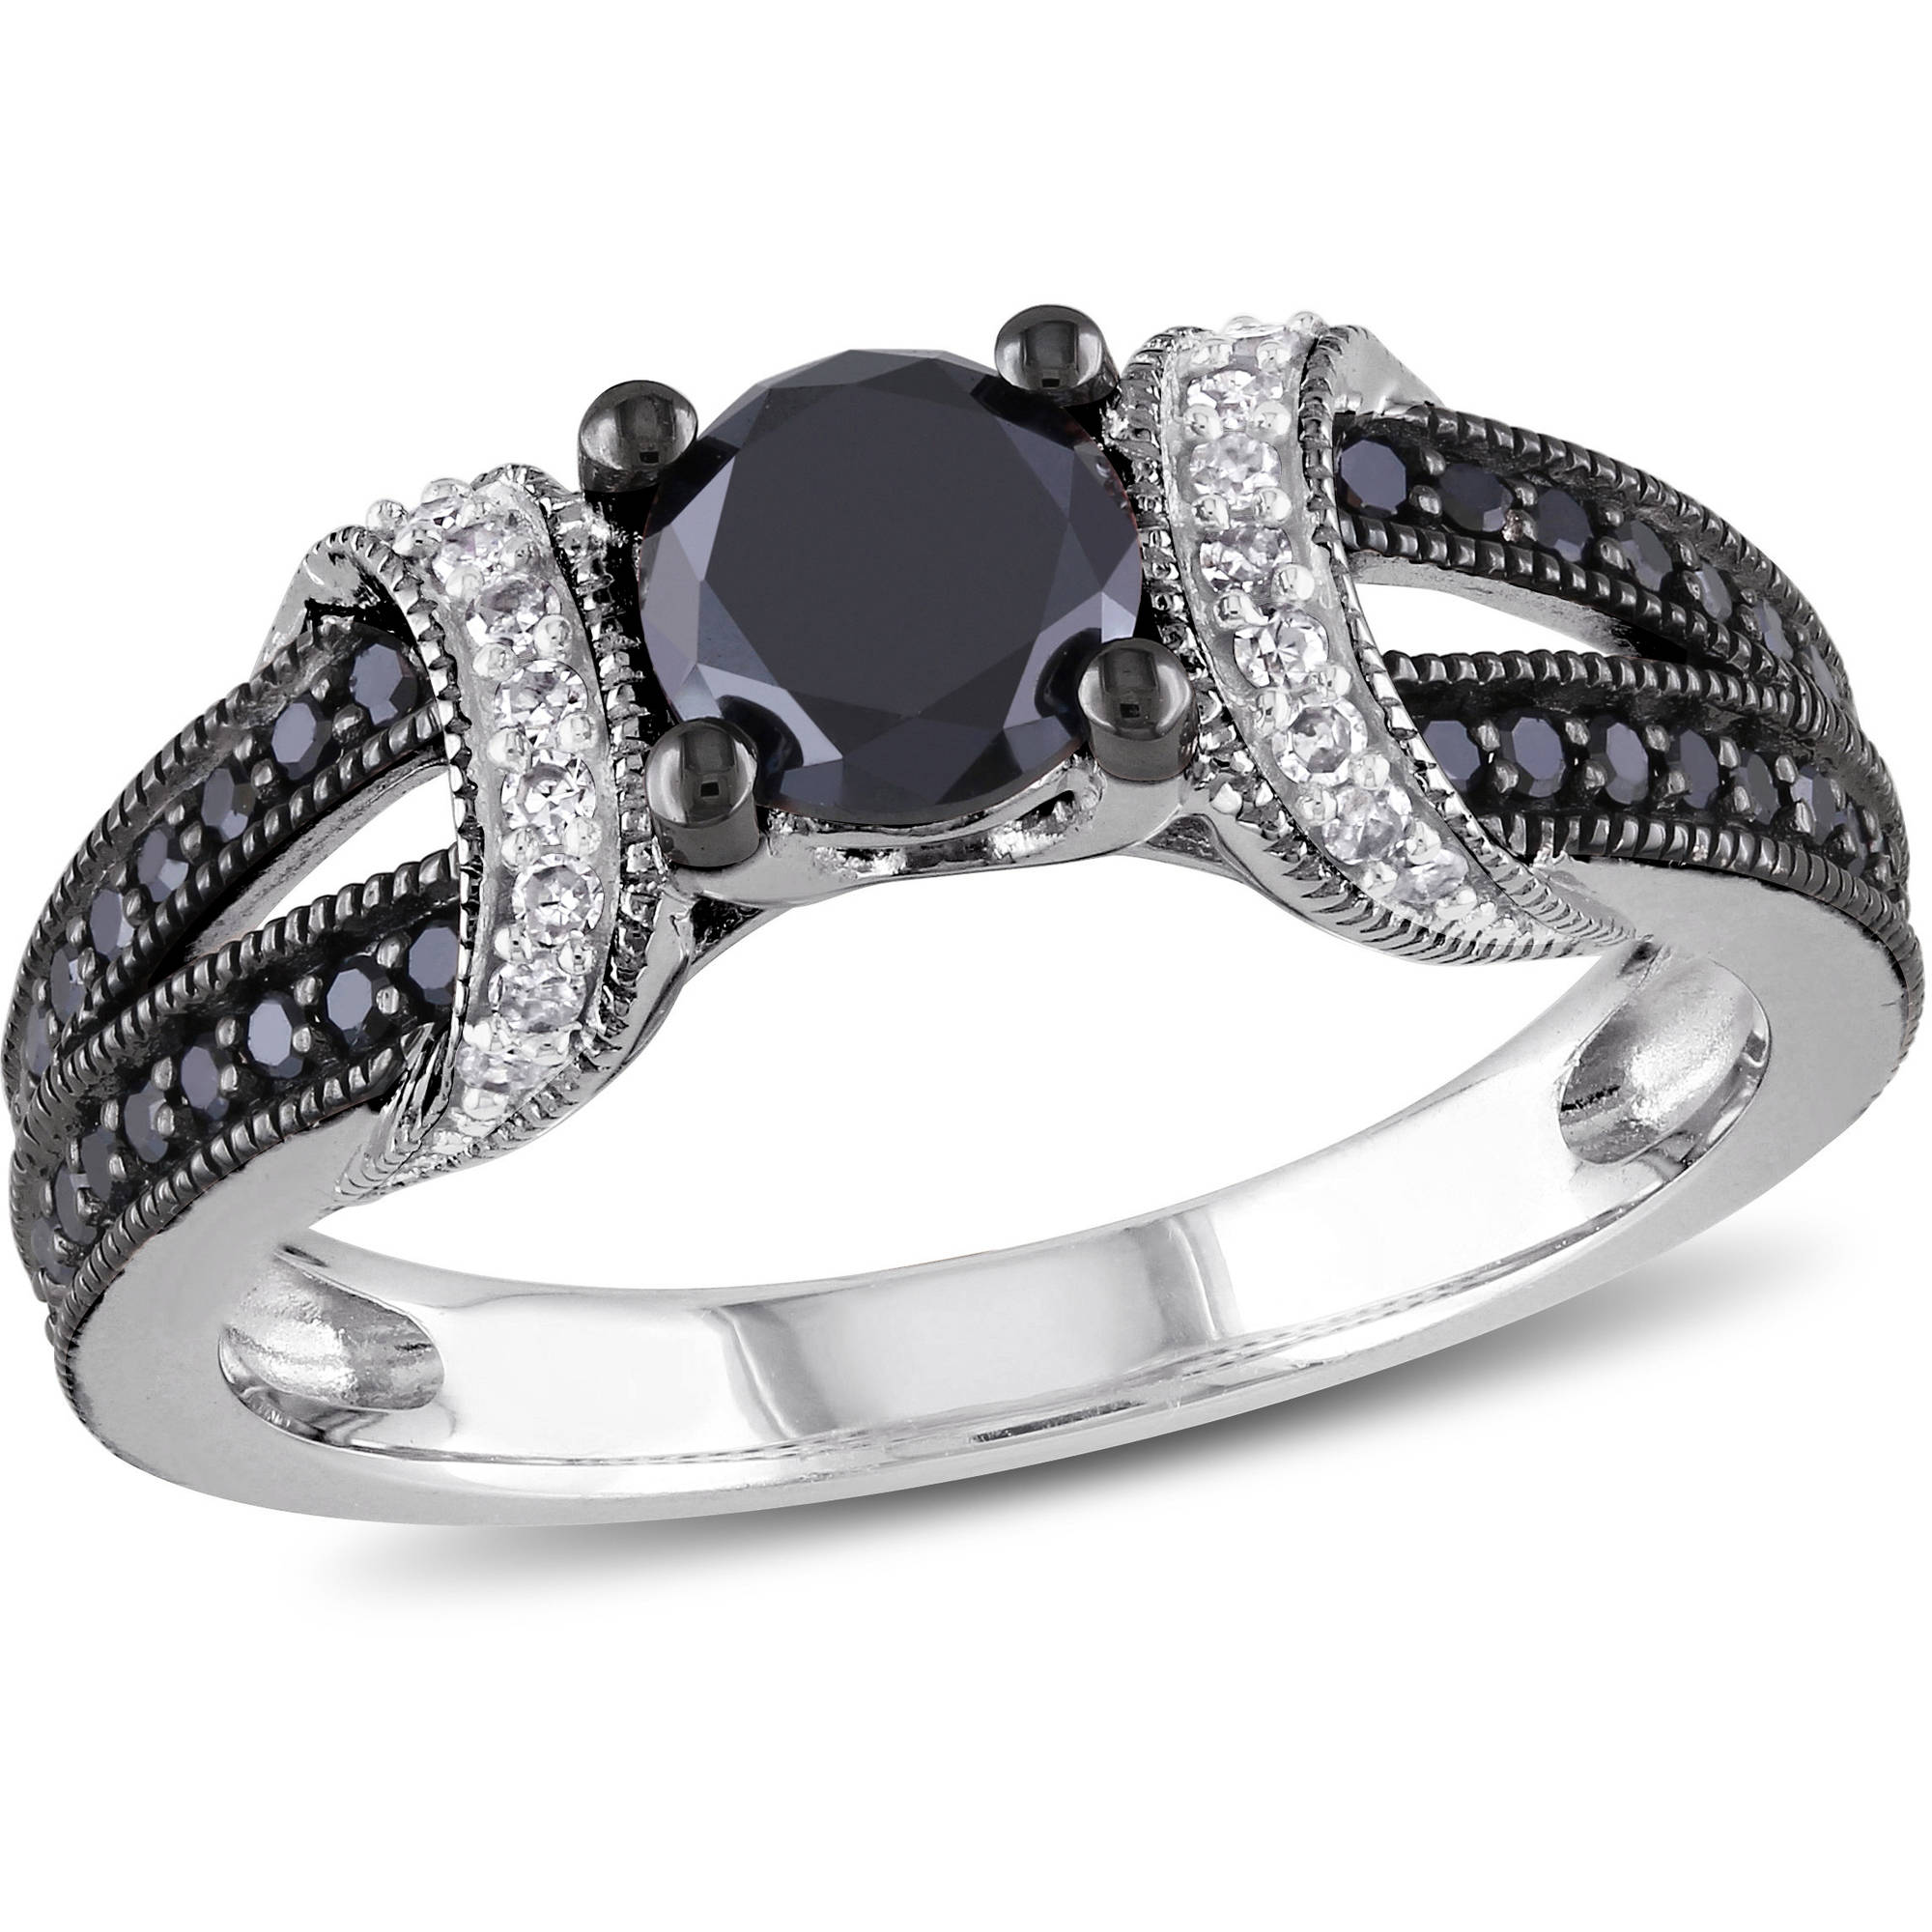 rings walmartcom - Womens Black Wedding Rings